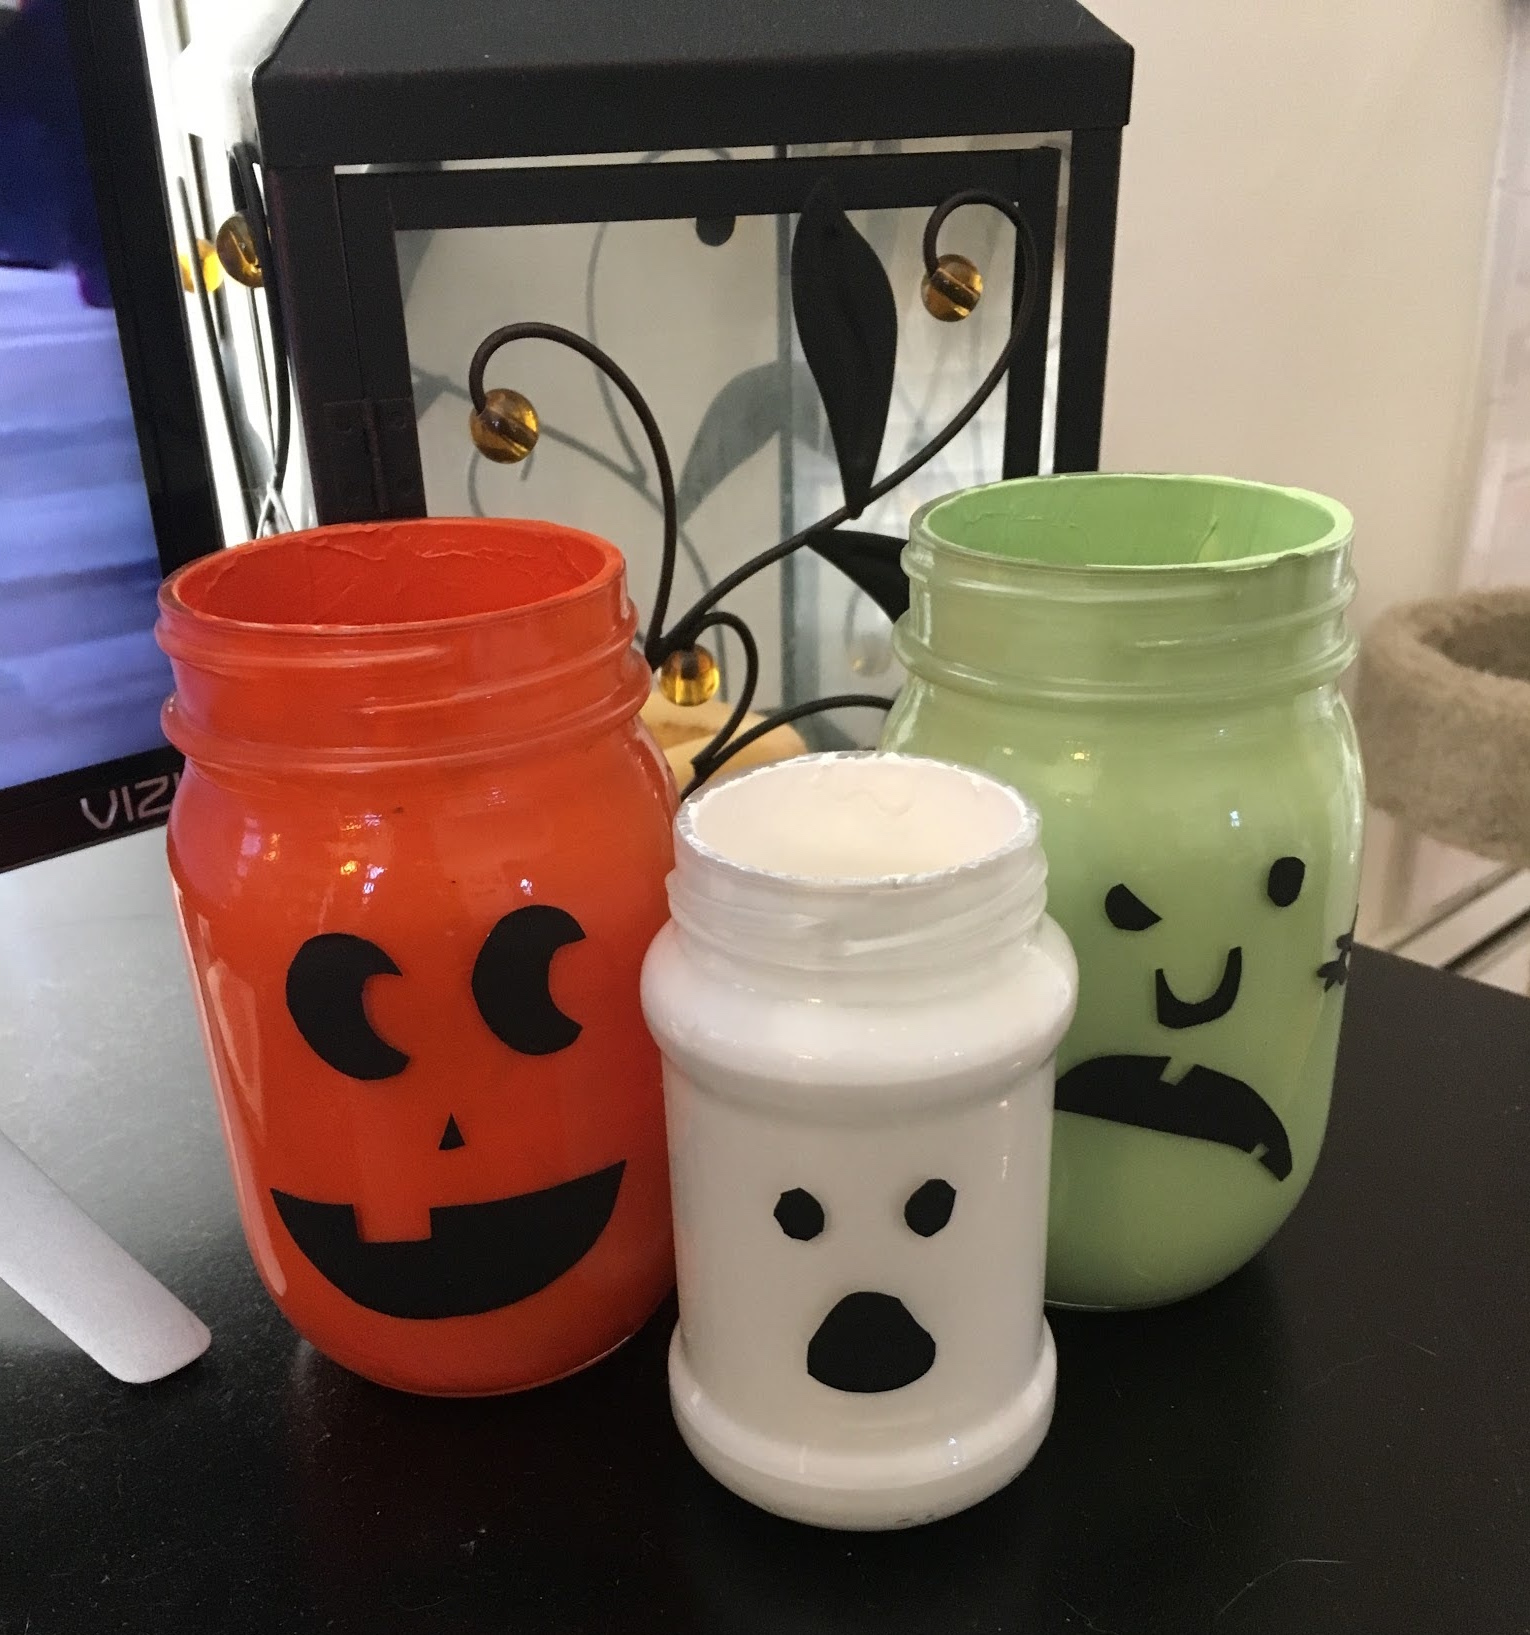 A sample of Megan's Halloween Crafting!